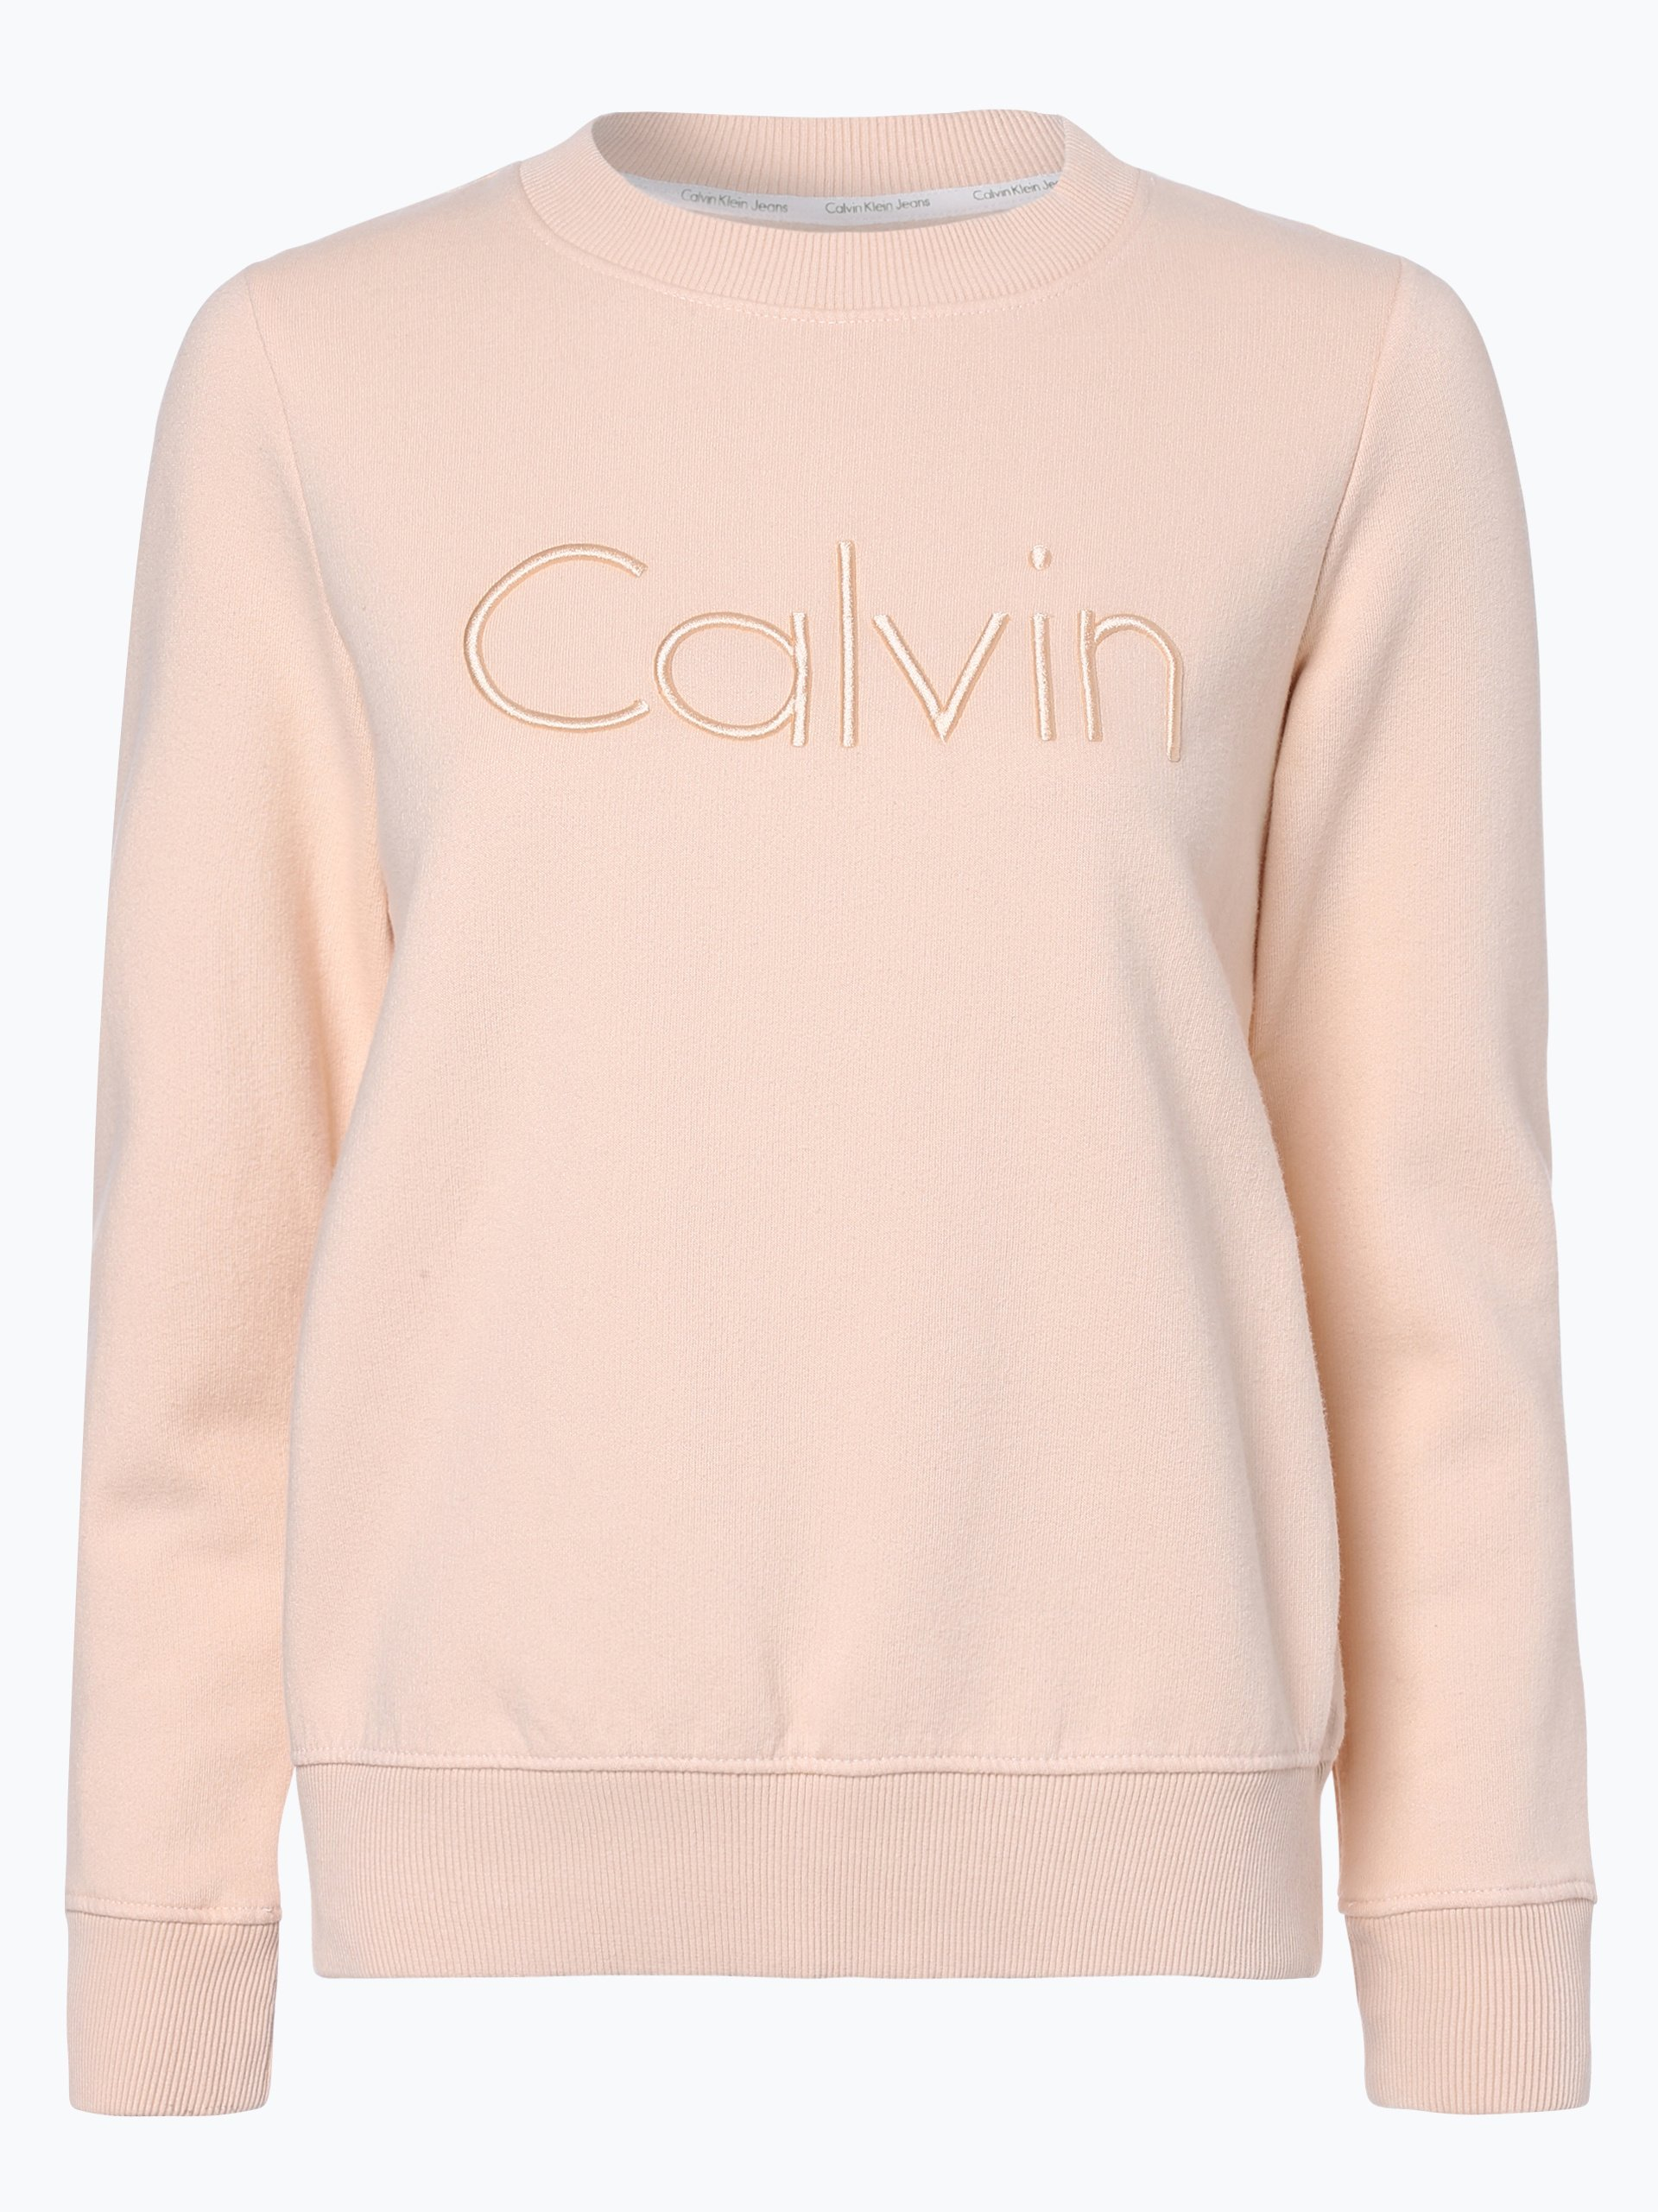 calvin klein jeans damen sweatshirt rosa uni online kaufen. Black Bedroom Furniture Sets. Home Design Ideas